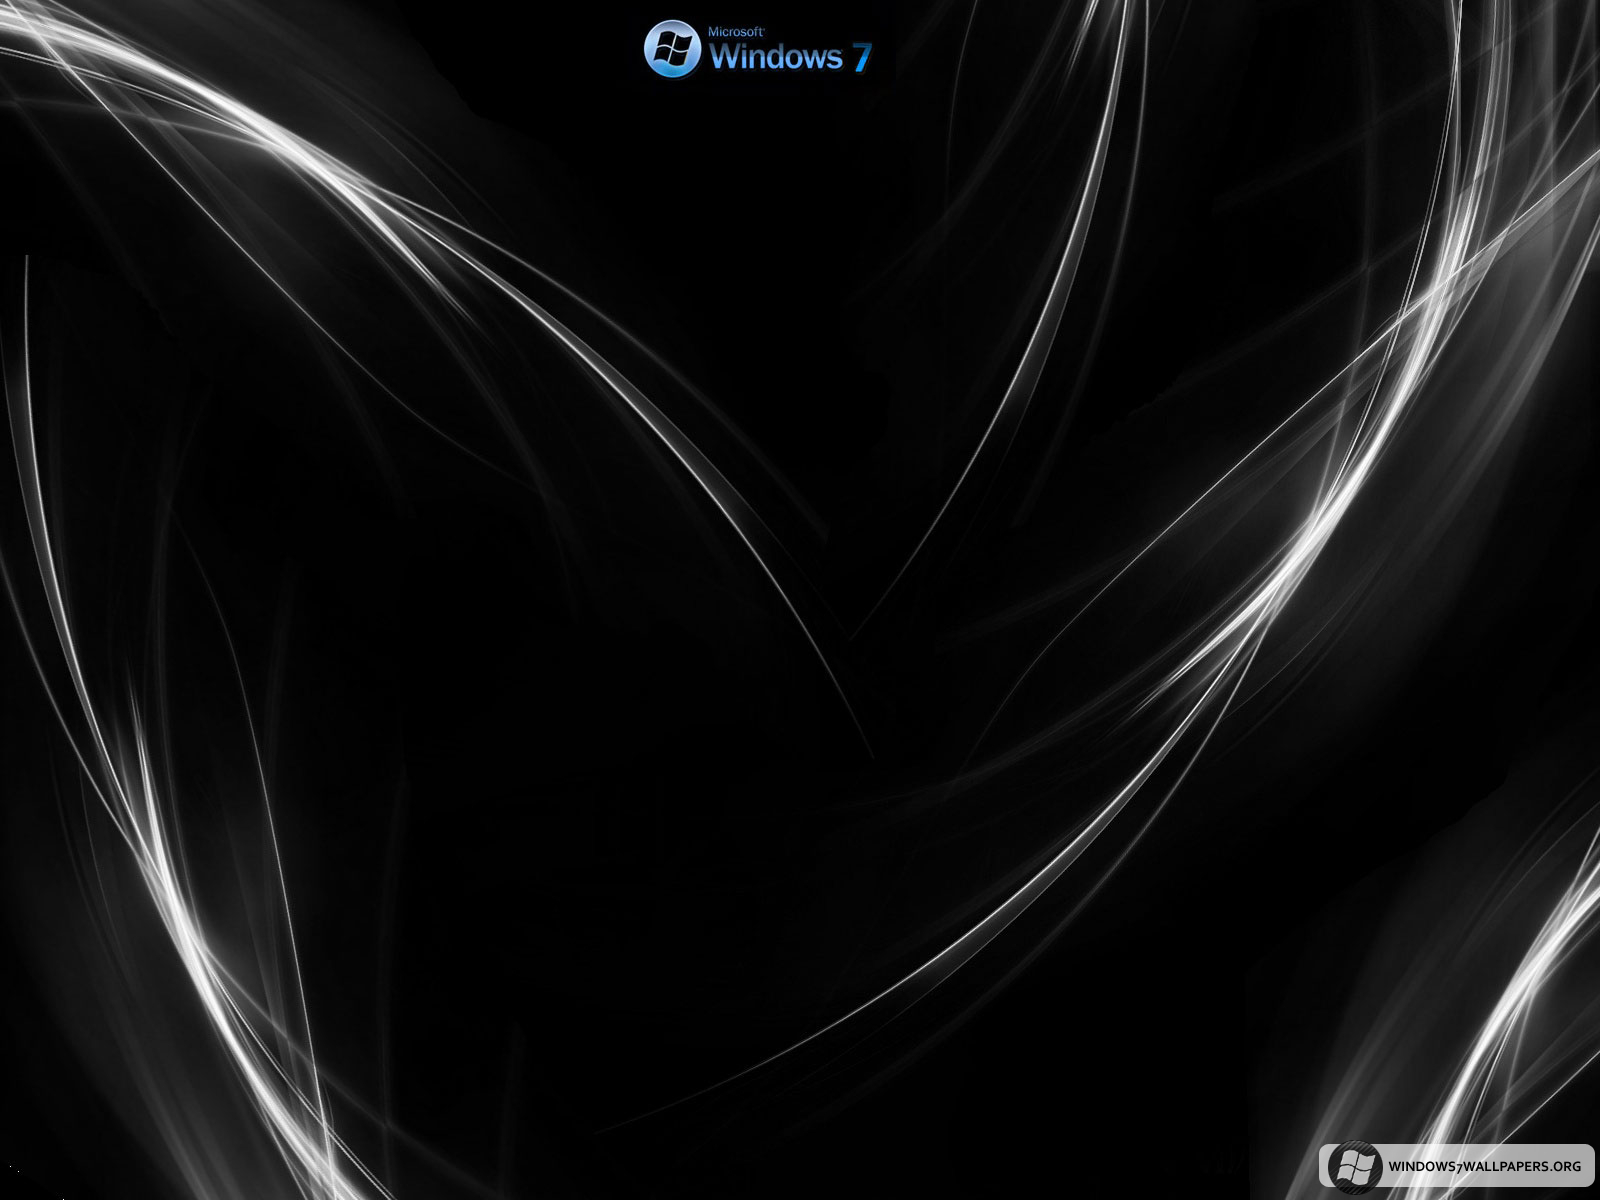 Windows 7 hd wallpapers d hd wallpapers - Black abstract background ...